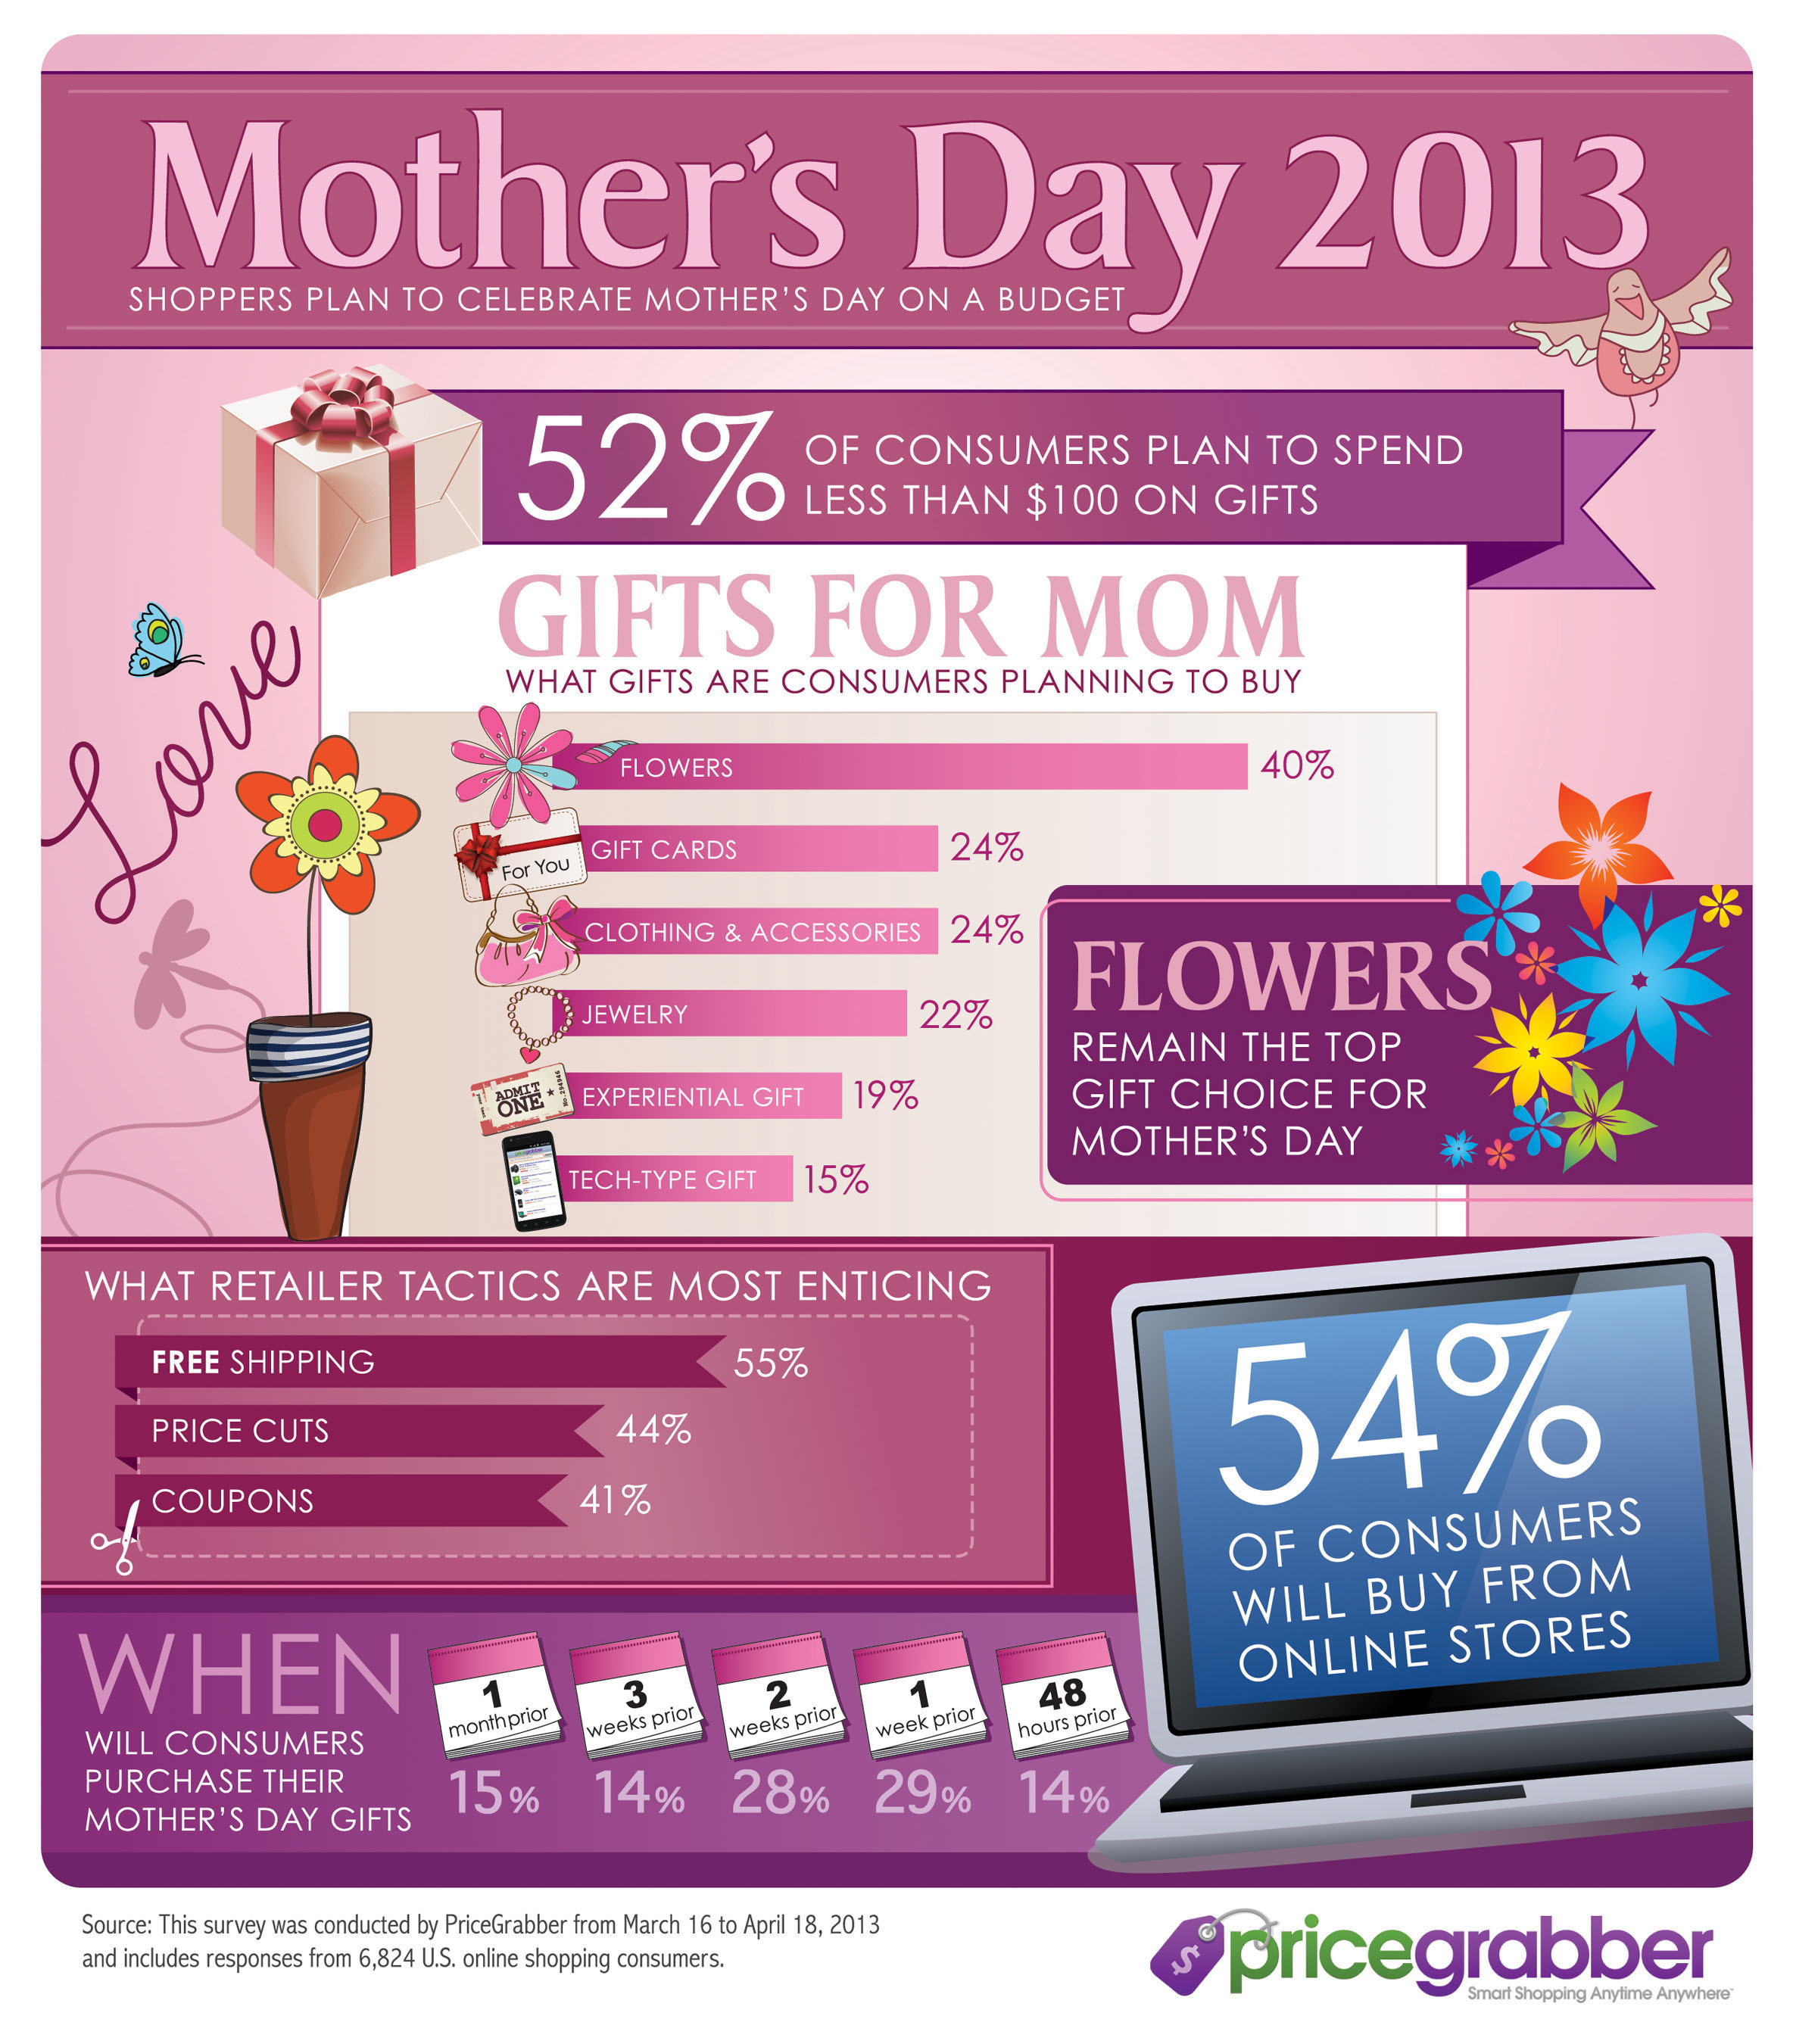 Shoppers Plan to Celebrate Mother's Day on a Budget, According to a PriceGrabber® Survey